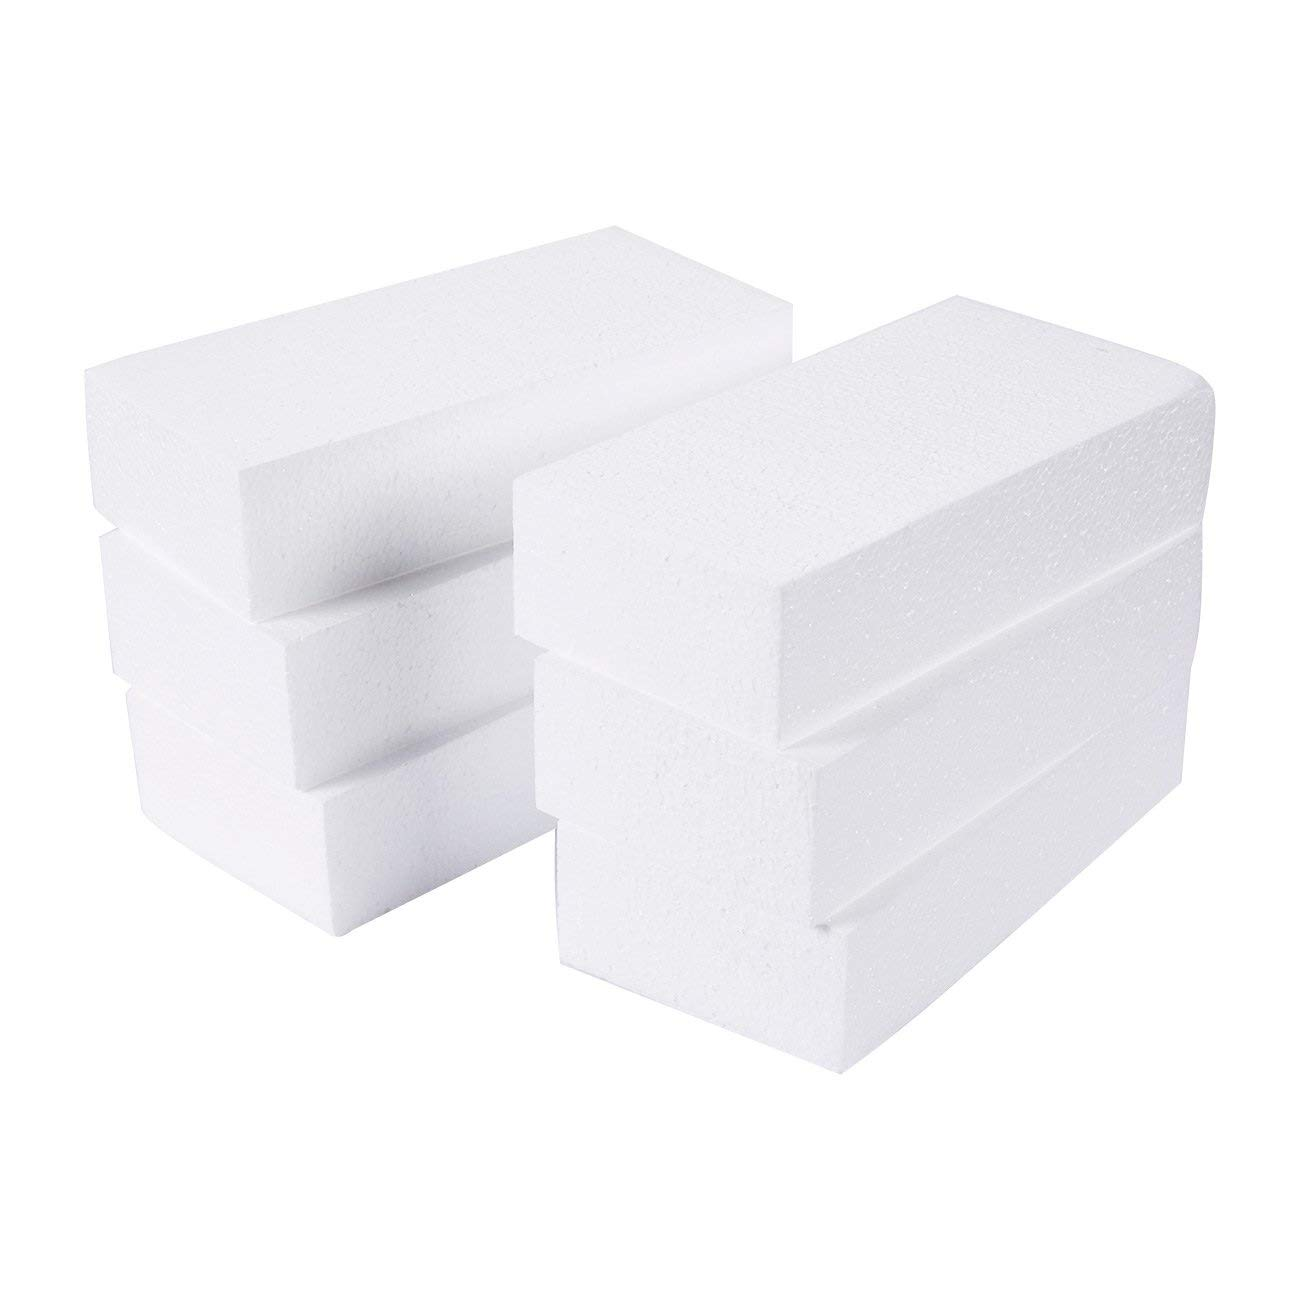 Craft Foam Block - 6-Pack Rectangle Polystyrene Foam Brick - Styrofoam Blocks for Sculpture, Modeling, DIY Arts and Crafts - White, 8 x 4 x 2 inches